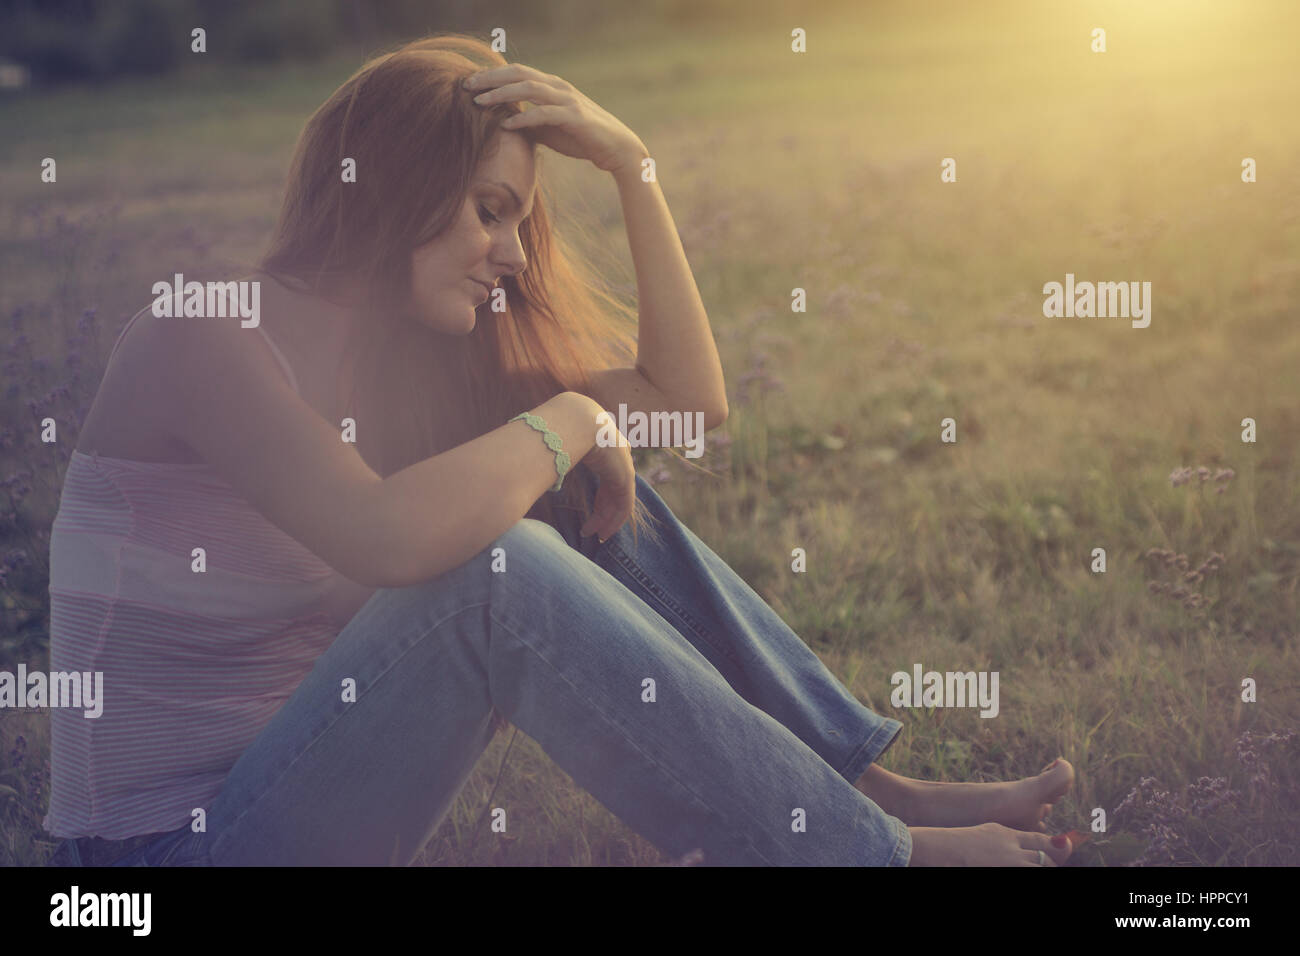 Sad woman in the nature - Stock Image